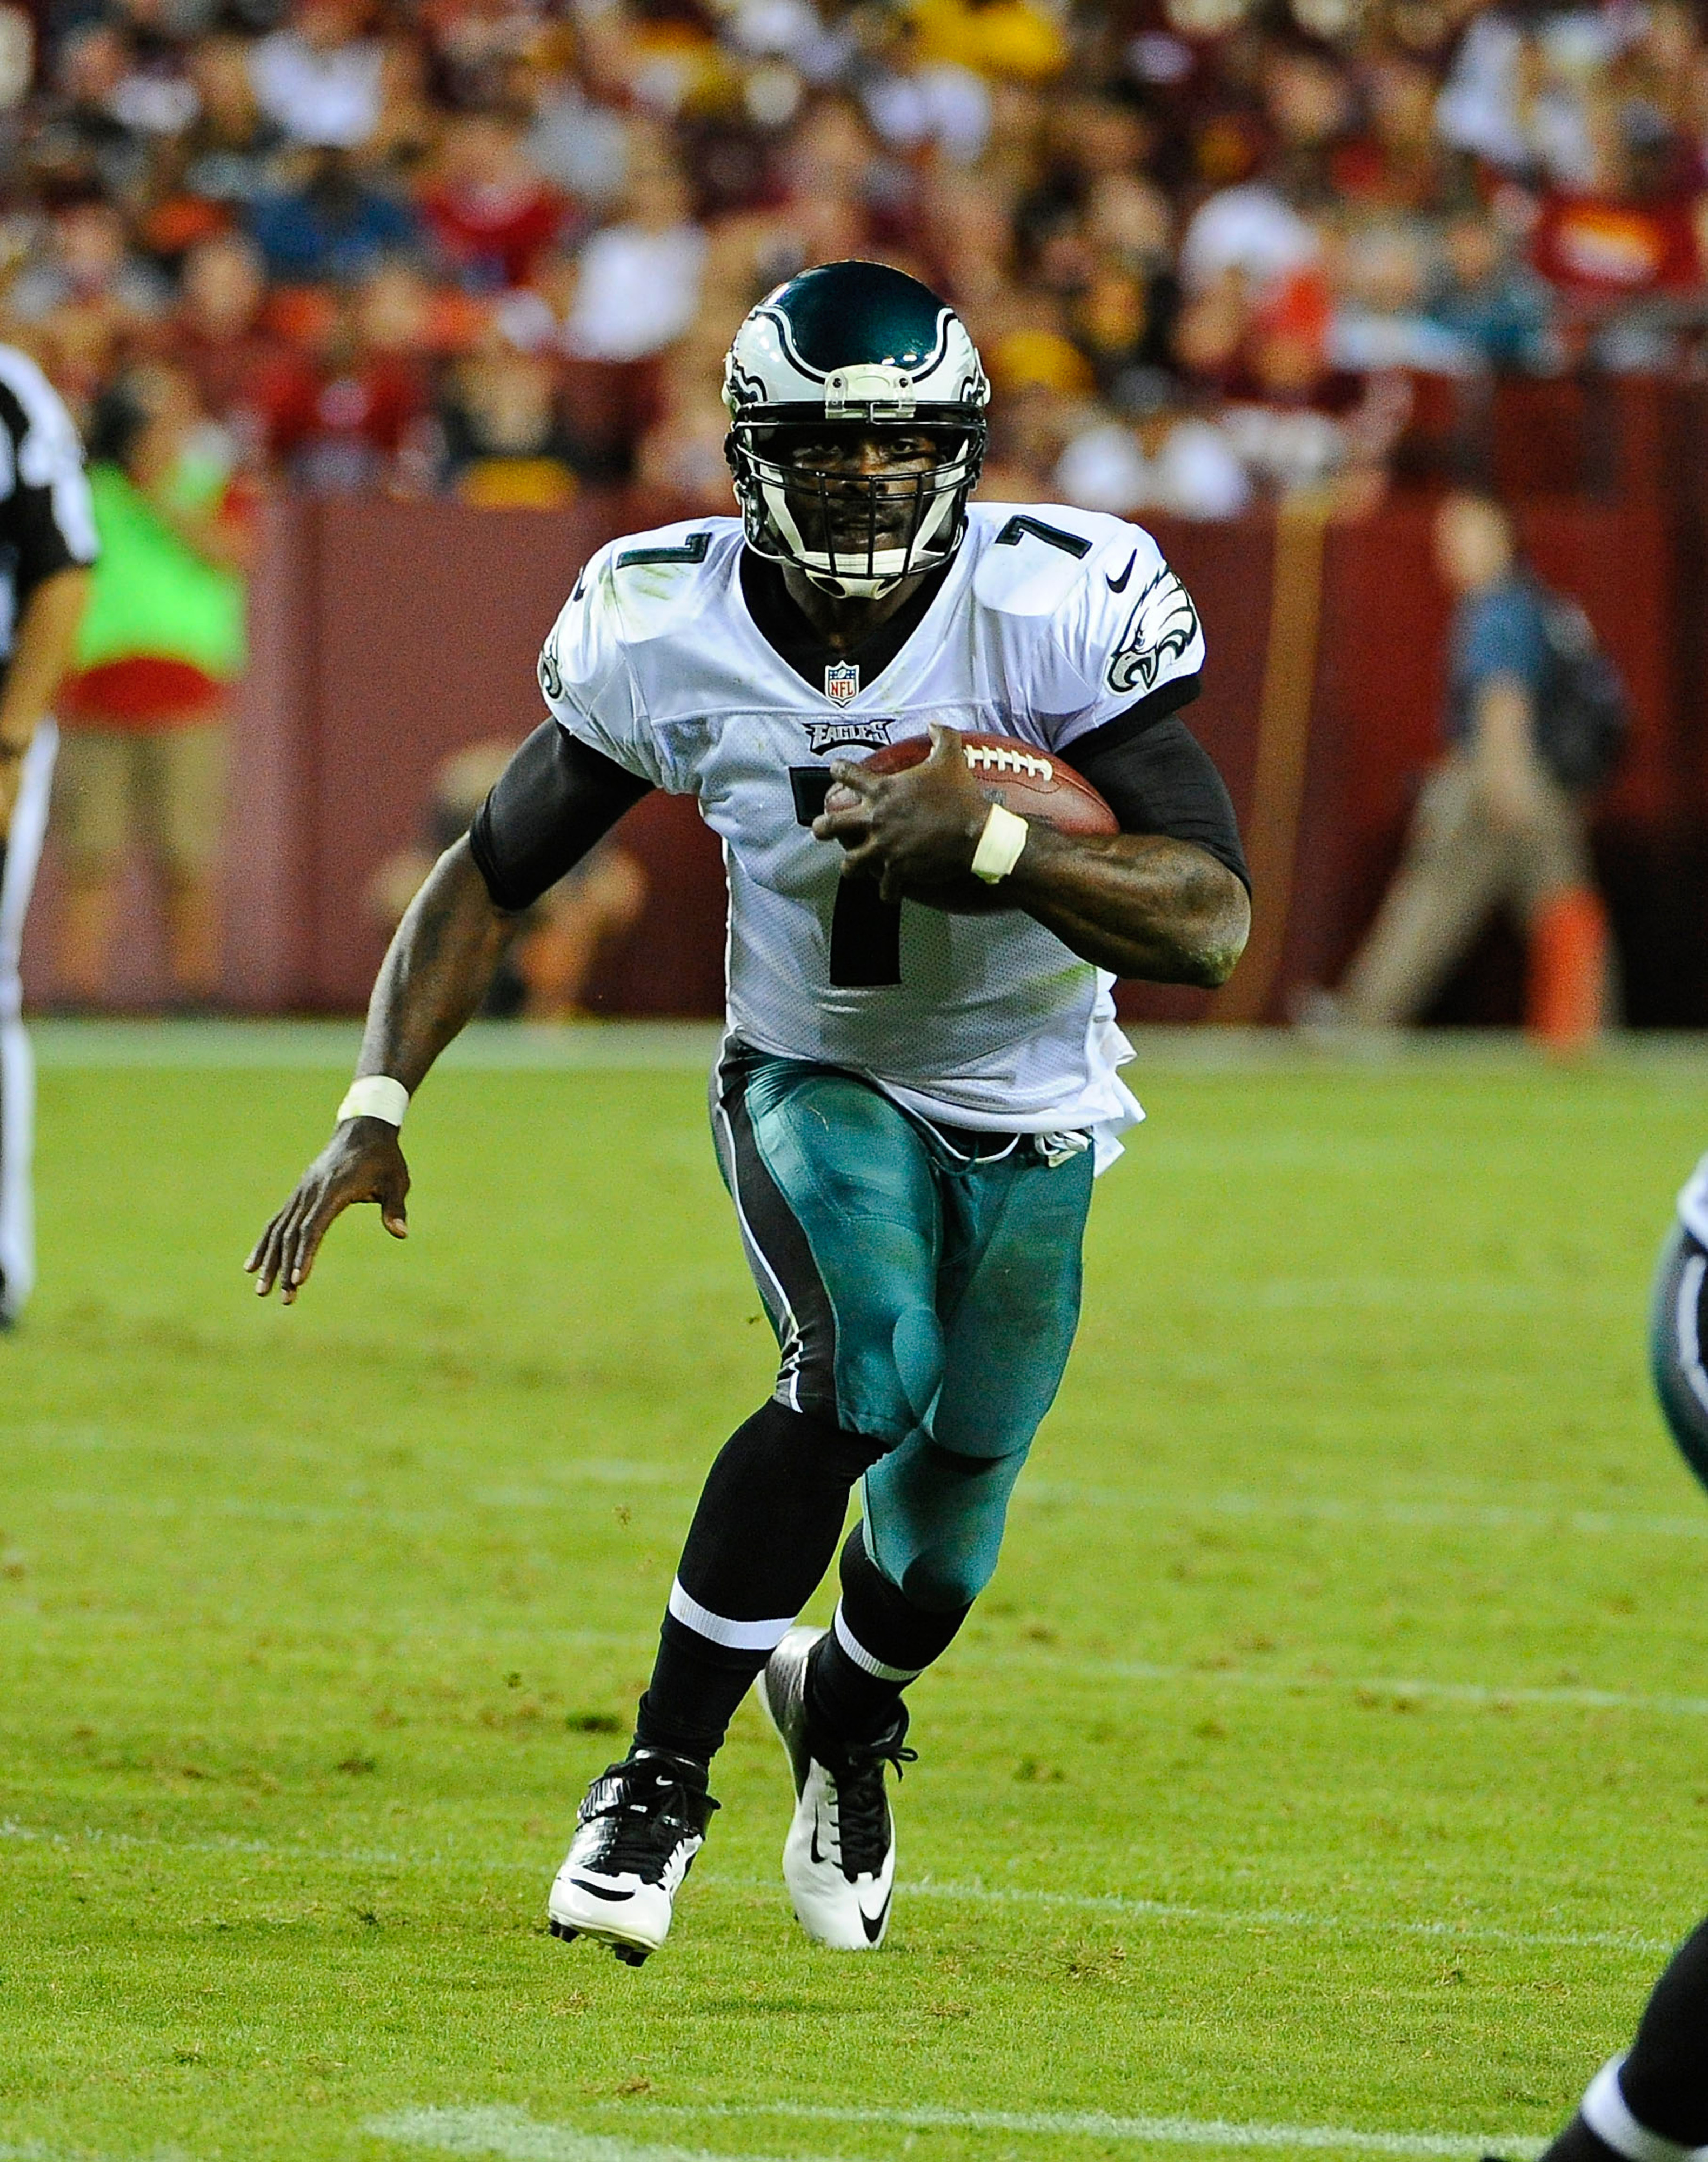 Michael Vick scores 3 touchdowns for fantasy owners in Eagles season opener